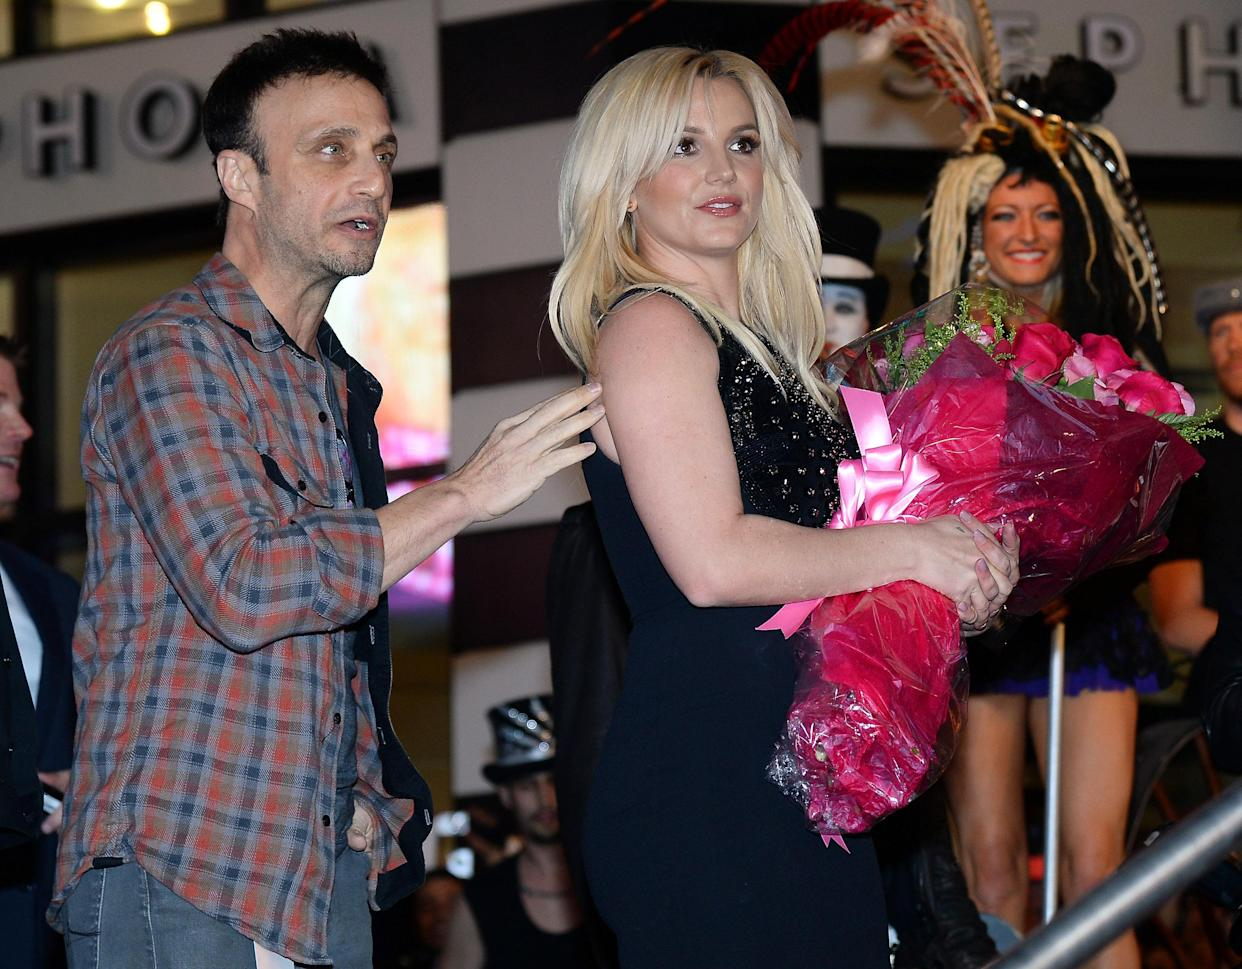 LAS VEGAS, NV - DECEMBER 03:  Singer Britney Spears (R) and her manager Larry Rudolph arrive at a welcome ceremony as Spears celebrates the release of her new album